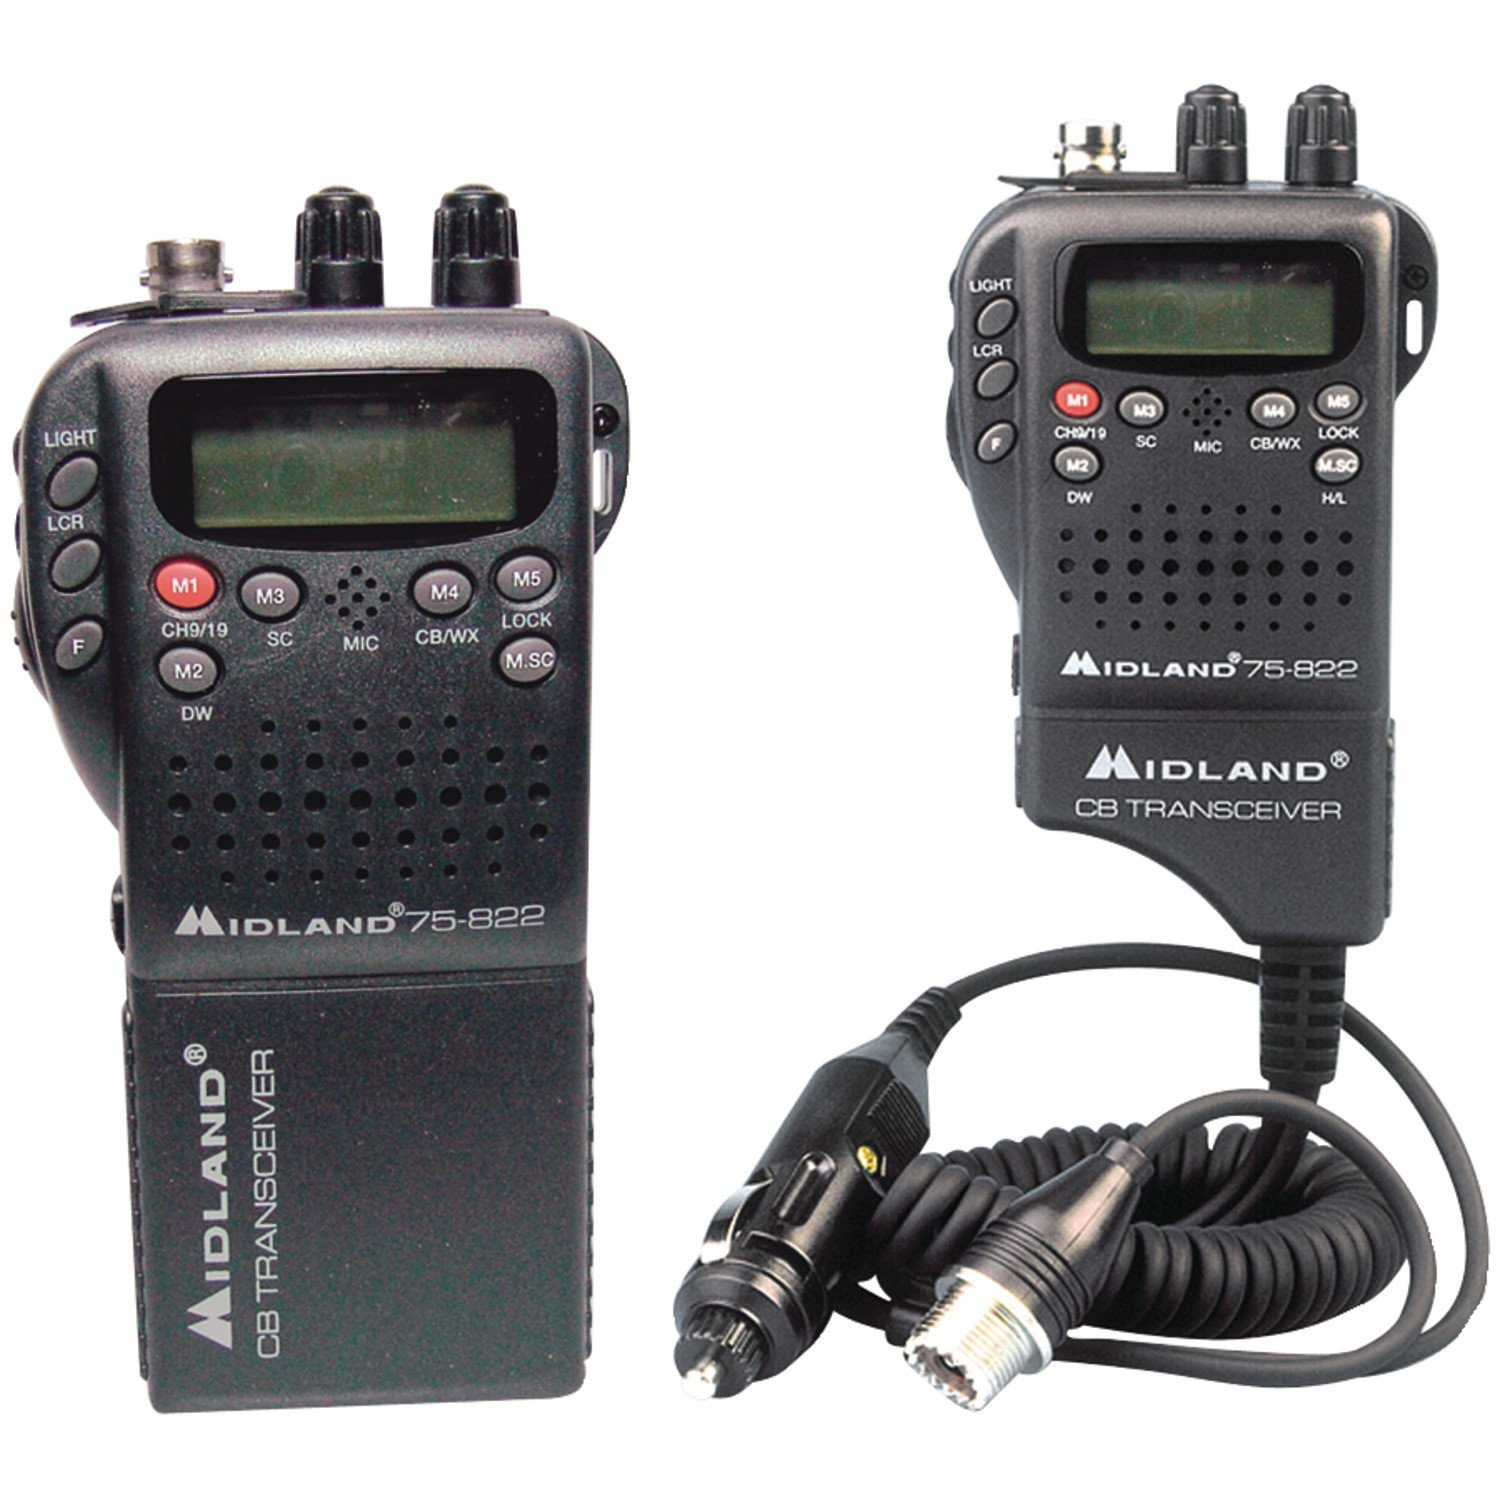 The Best Handheld CB Radio 2